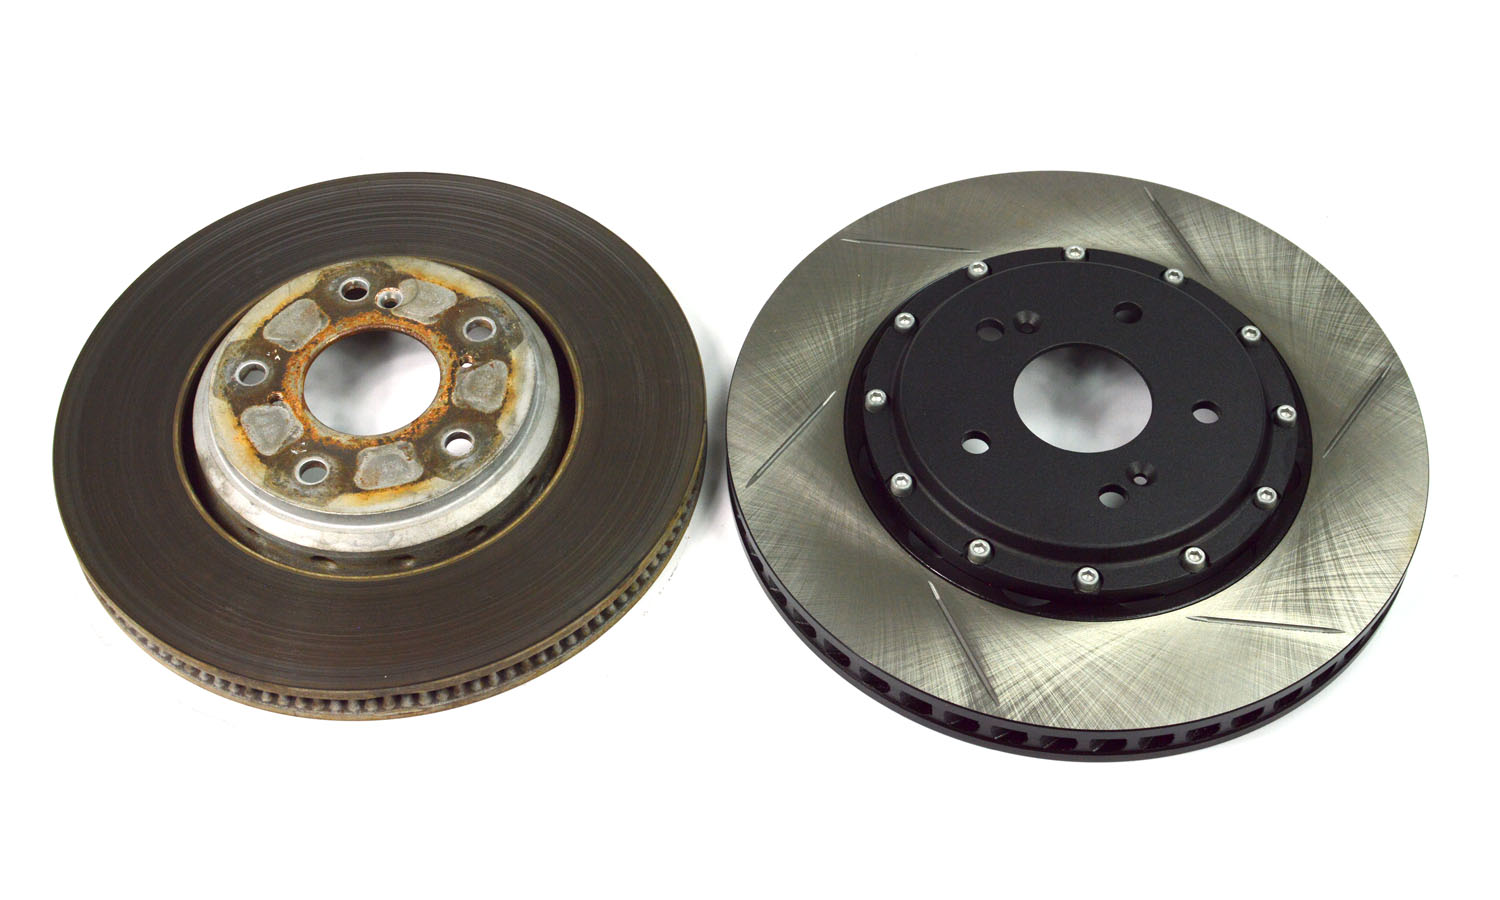 Increased diameter and thickness improve thermal capacity and braking performance vs the SI OEM brake rotors